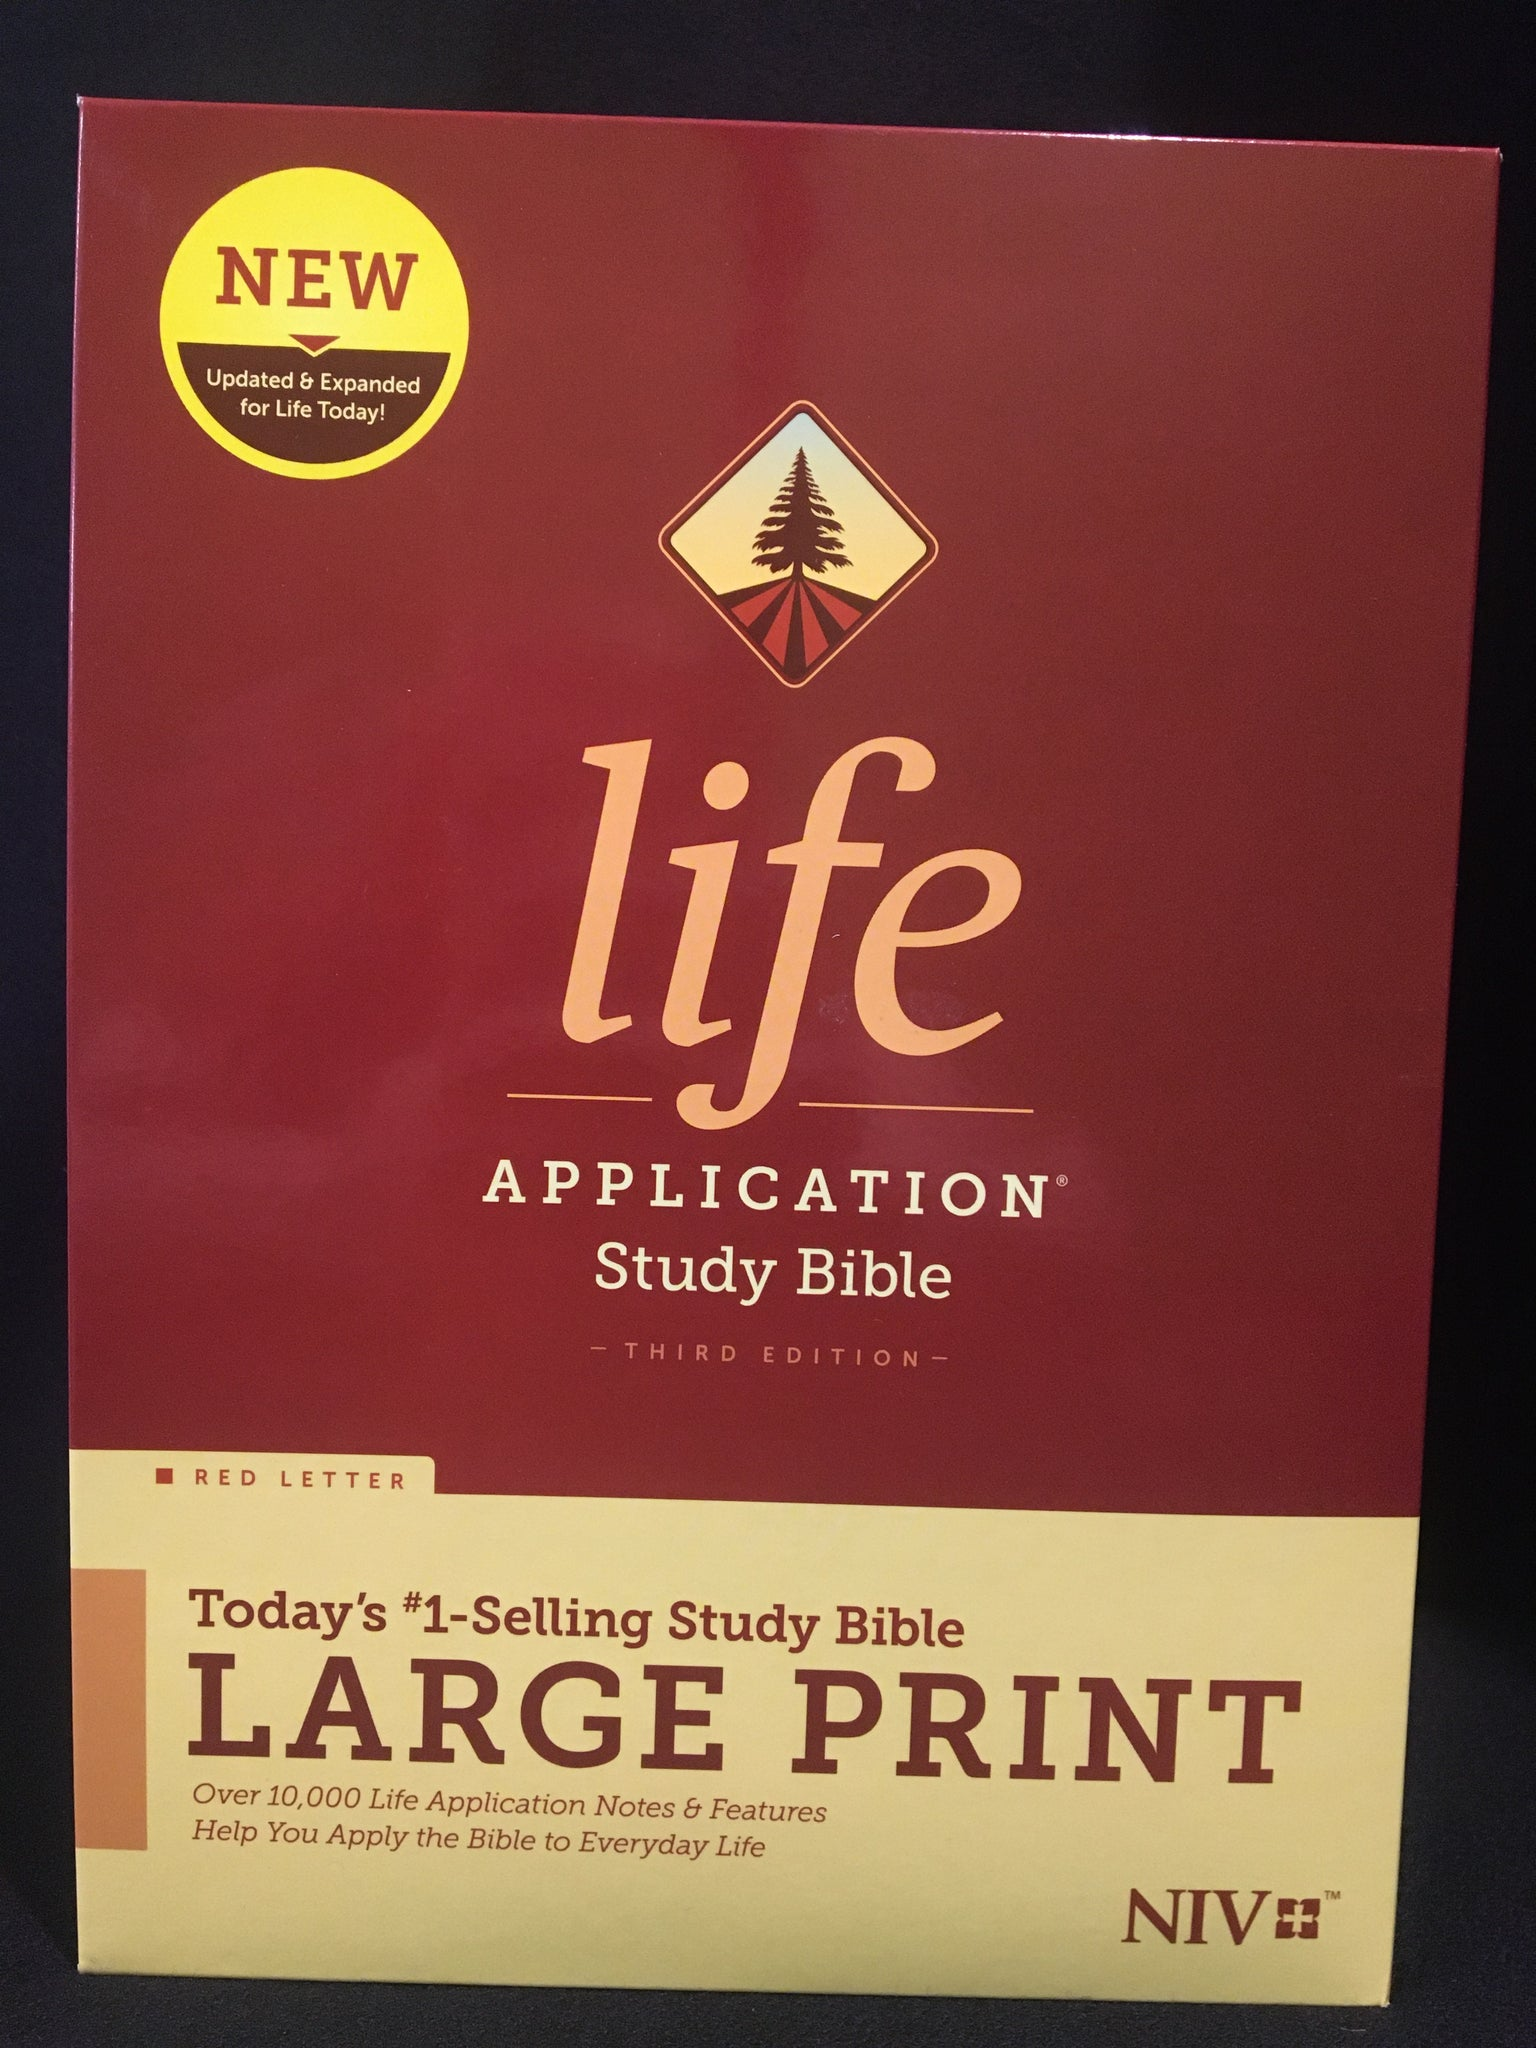 NIV Life Application Study Bible (Third Editions) - Large Print Addition